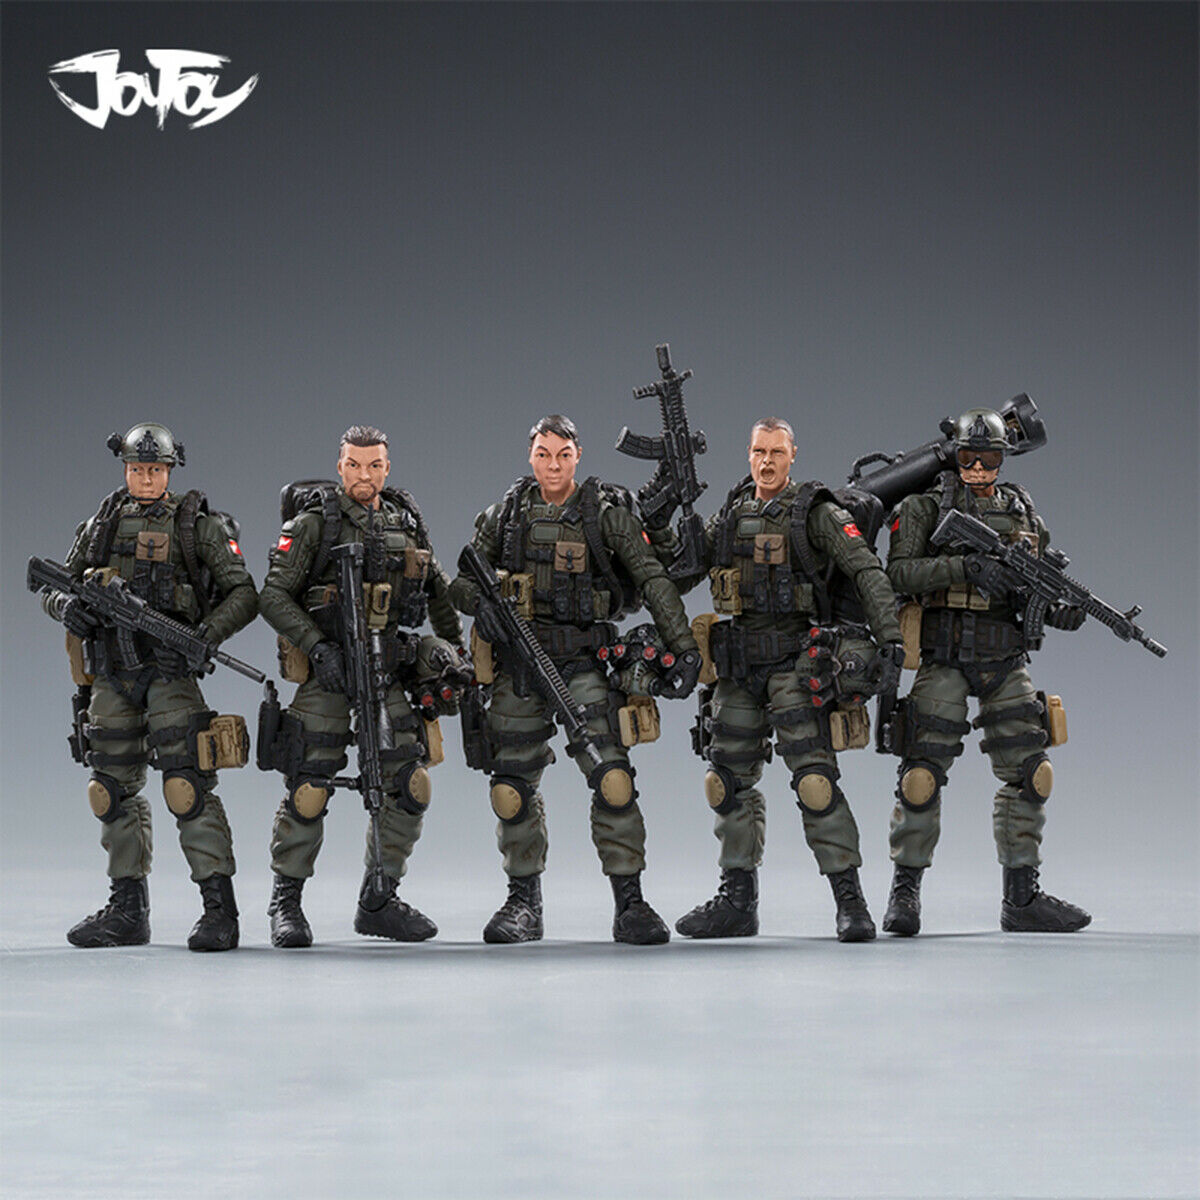 JOYgiocattolo 81911041 118 PLA Army Counter Terrorism Unit specialee Group 5 Movable Fig